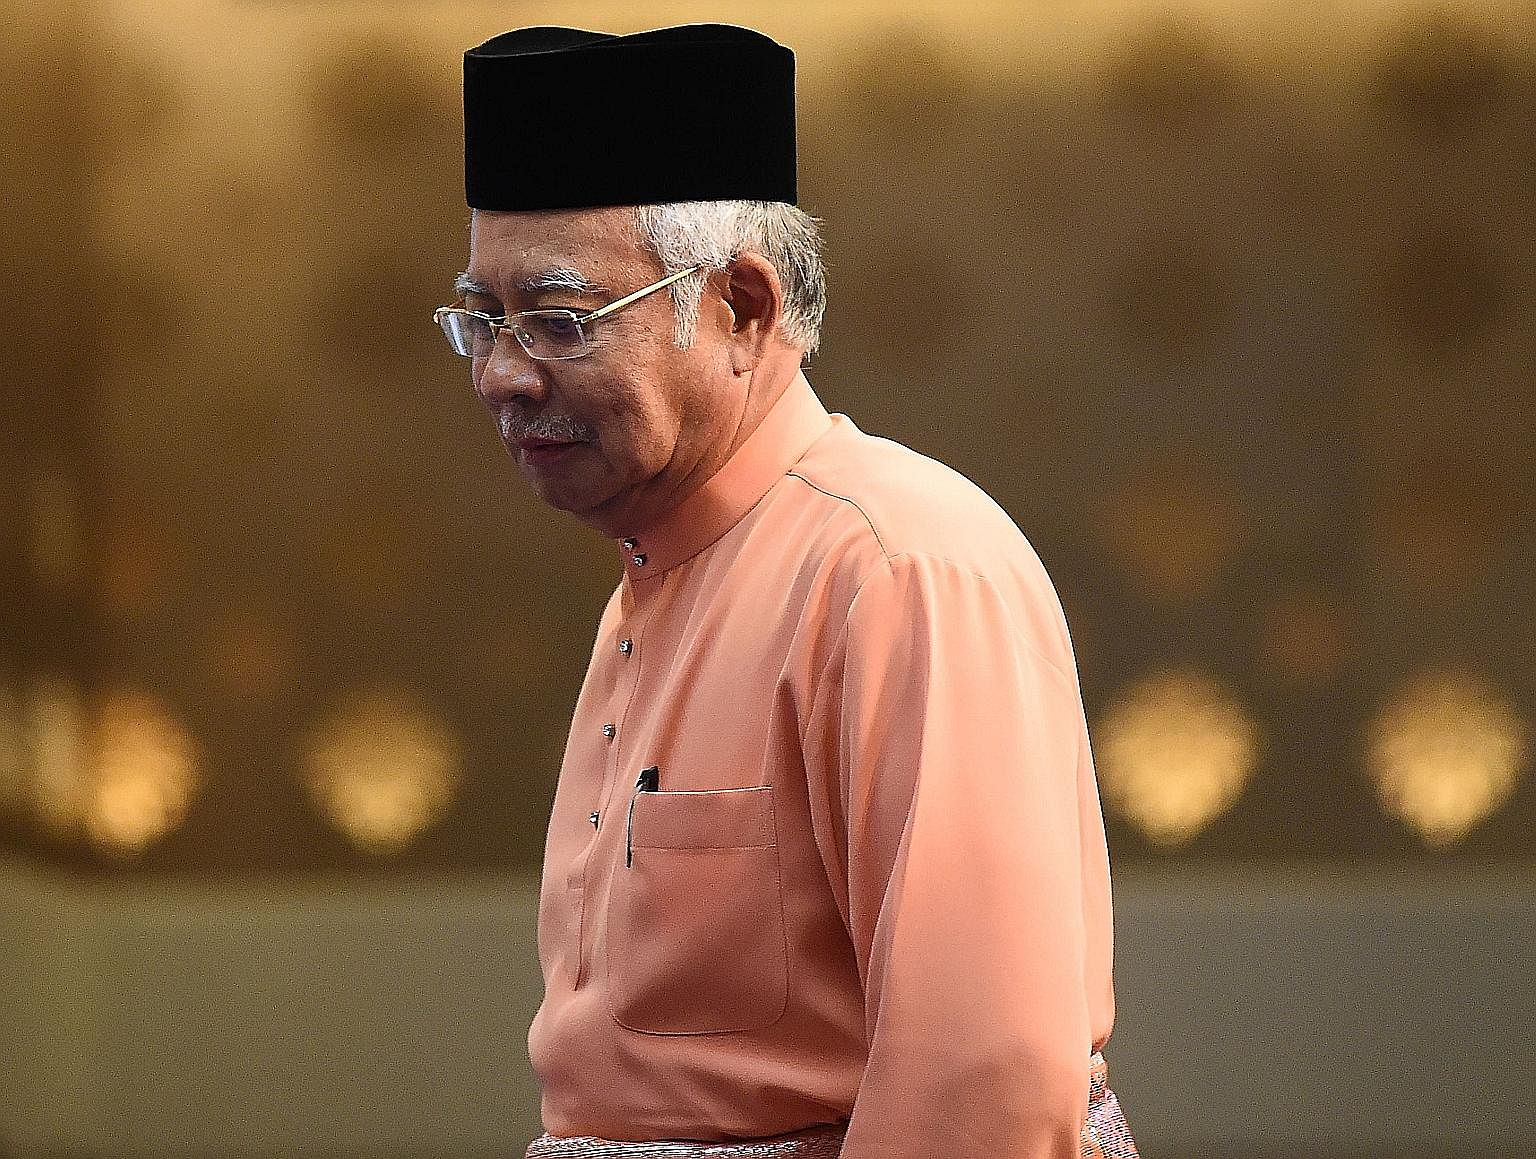 Mr Najib continues to dismiss the allegations brought against him.